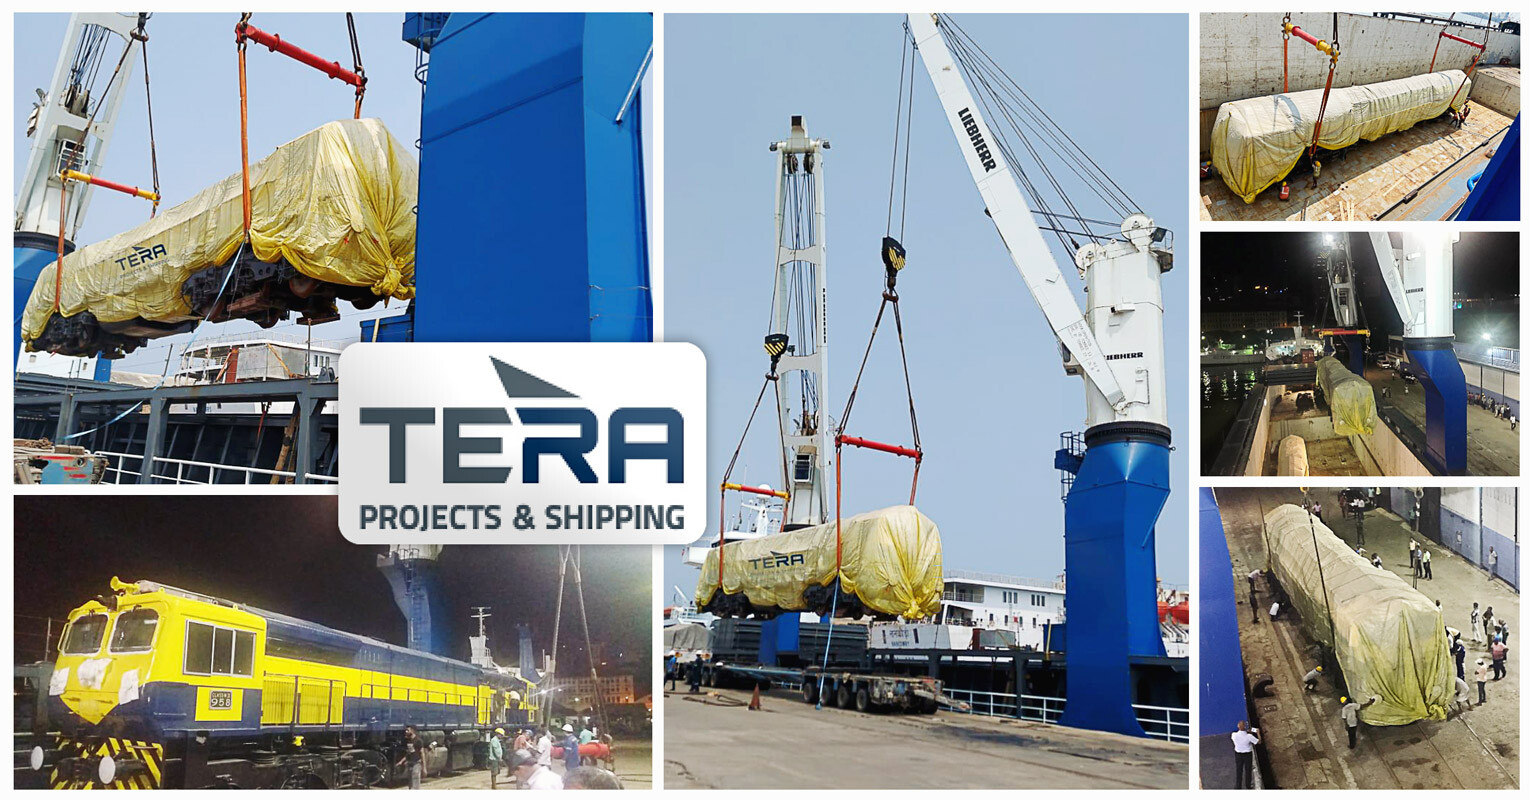 Tera Projects India Executed a Shipment of Locomotives